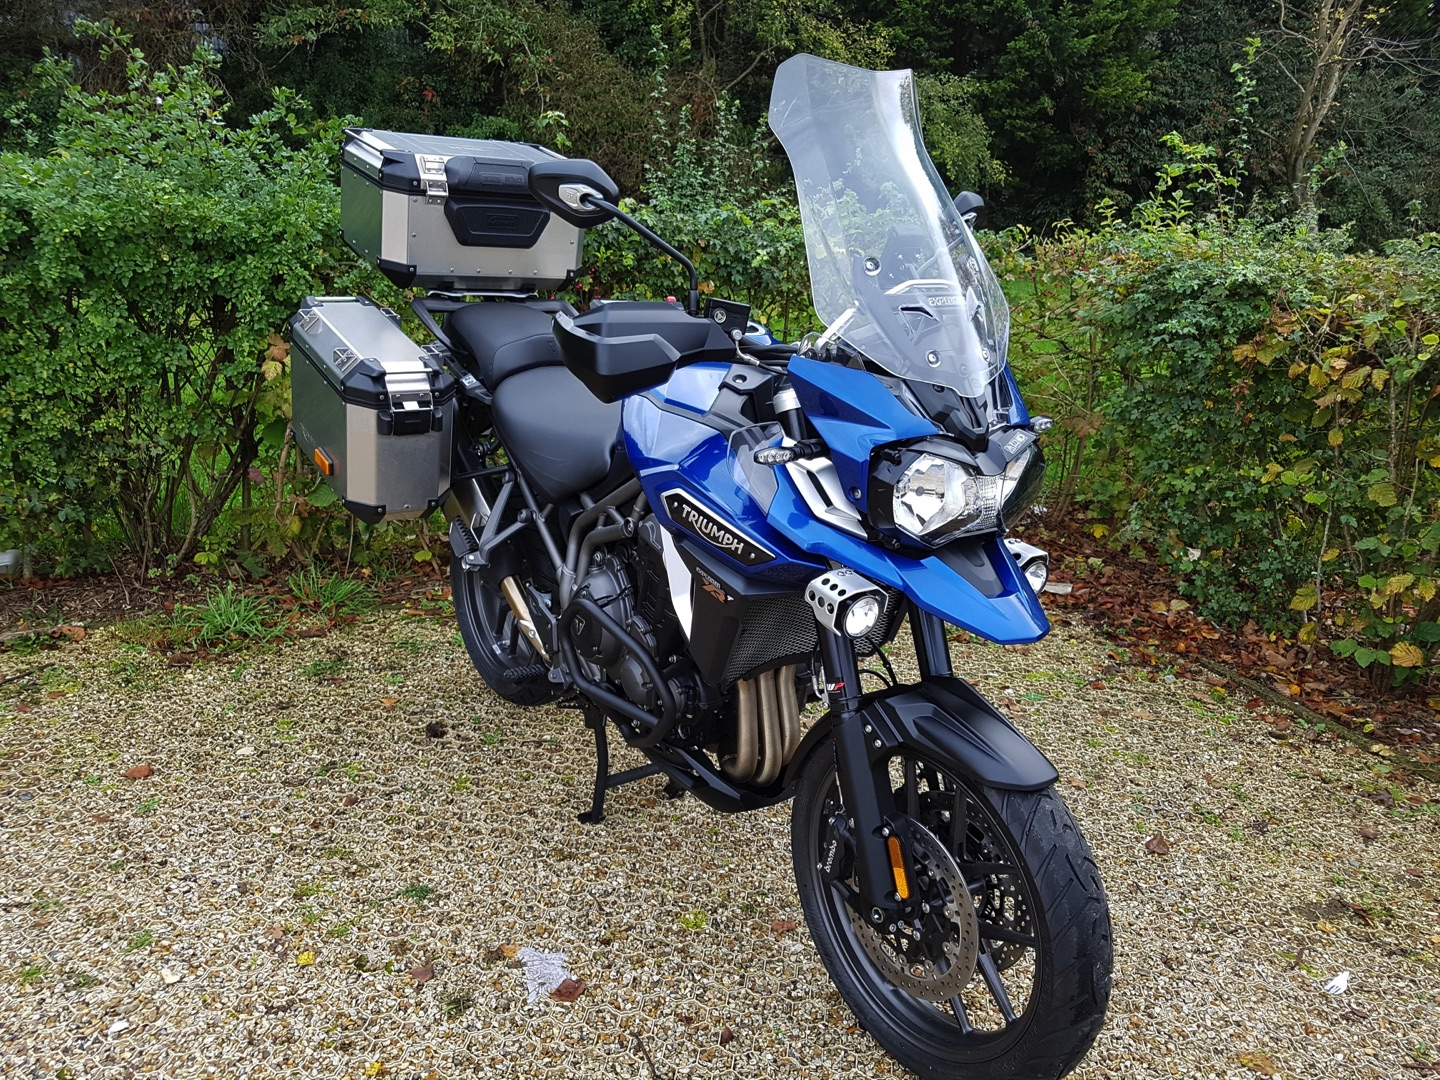 https://www.sjsmotorcycles.co.uk/wp-content/uploads/2017/11/triumph-tiger-explorer-xrt-for-sale20171107_120415_resized_thumb.jpg